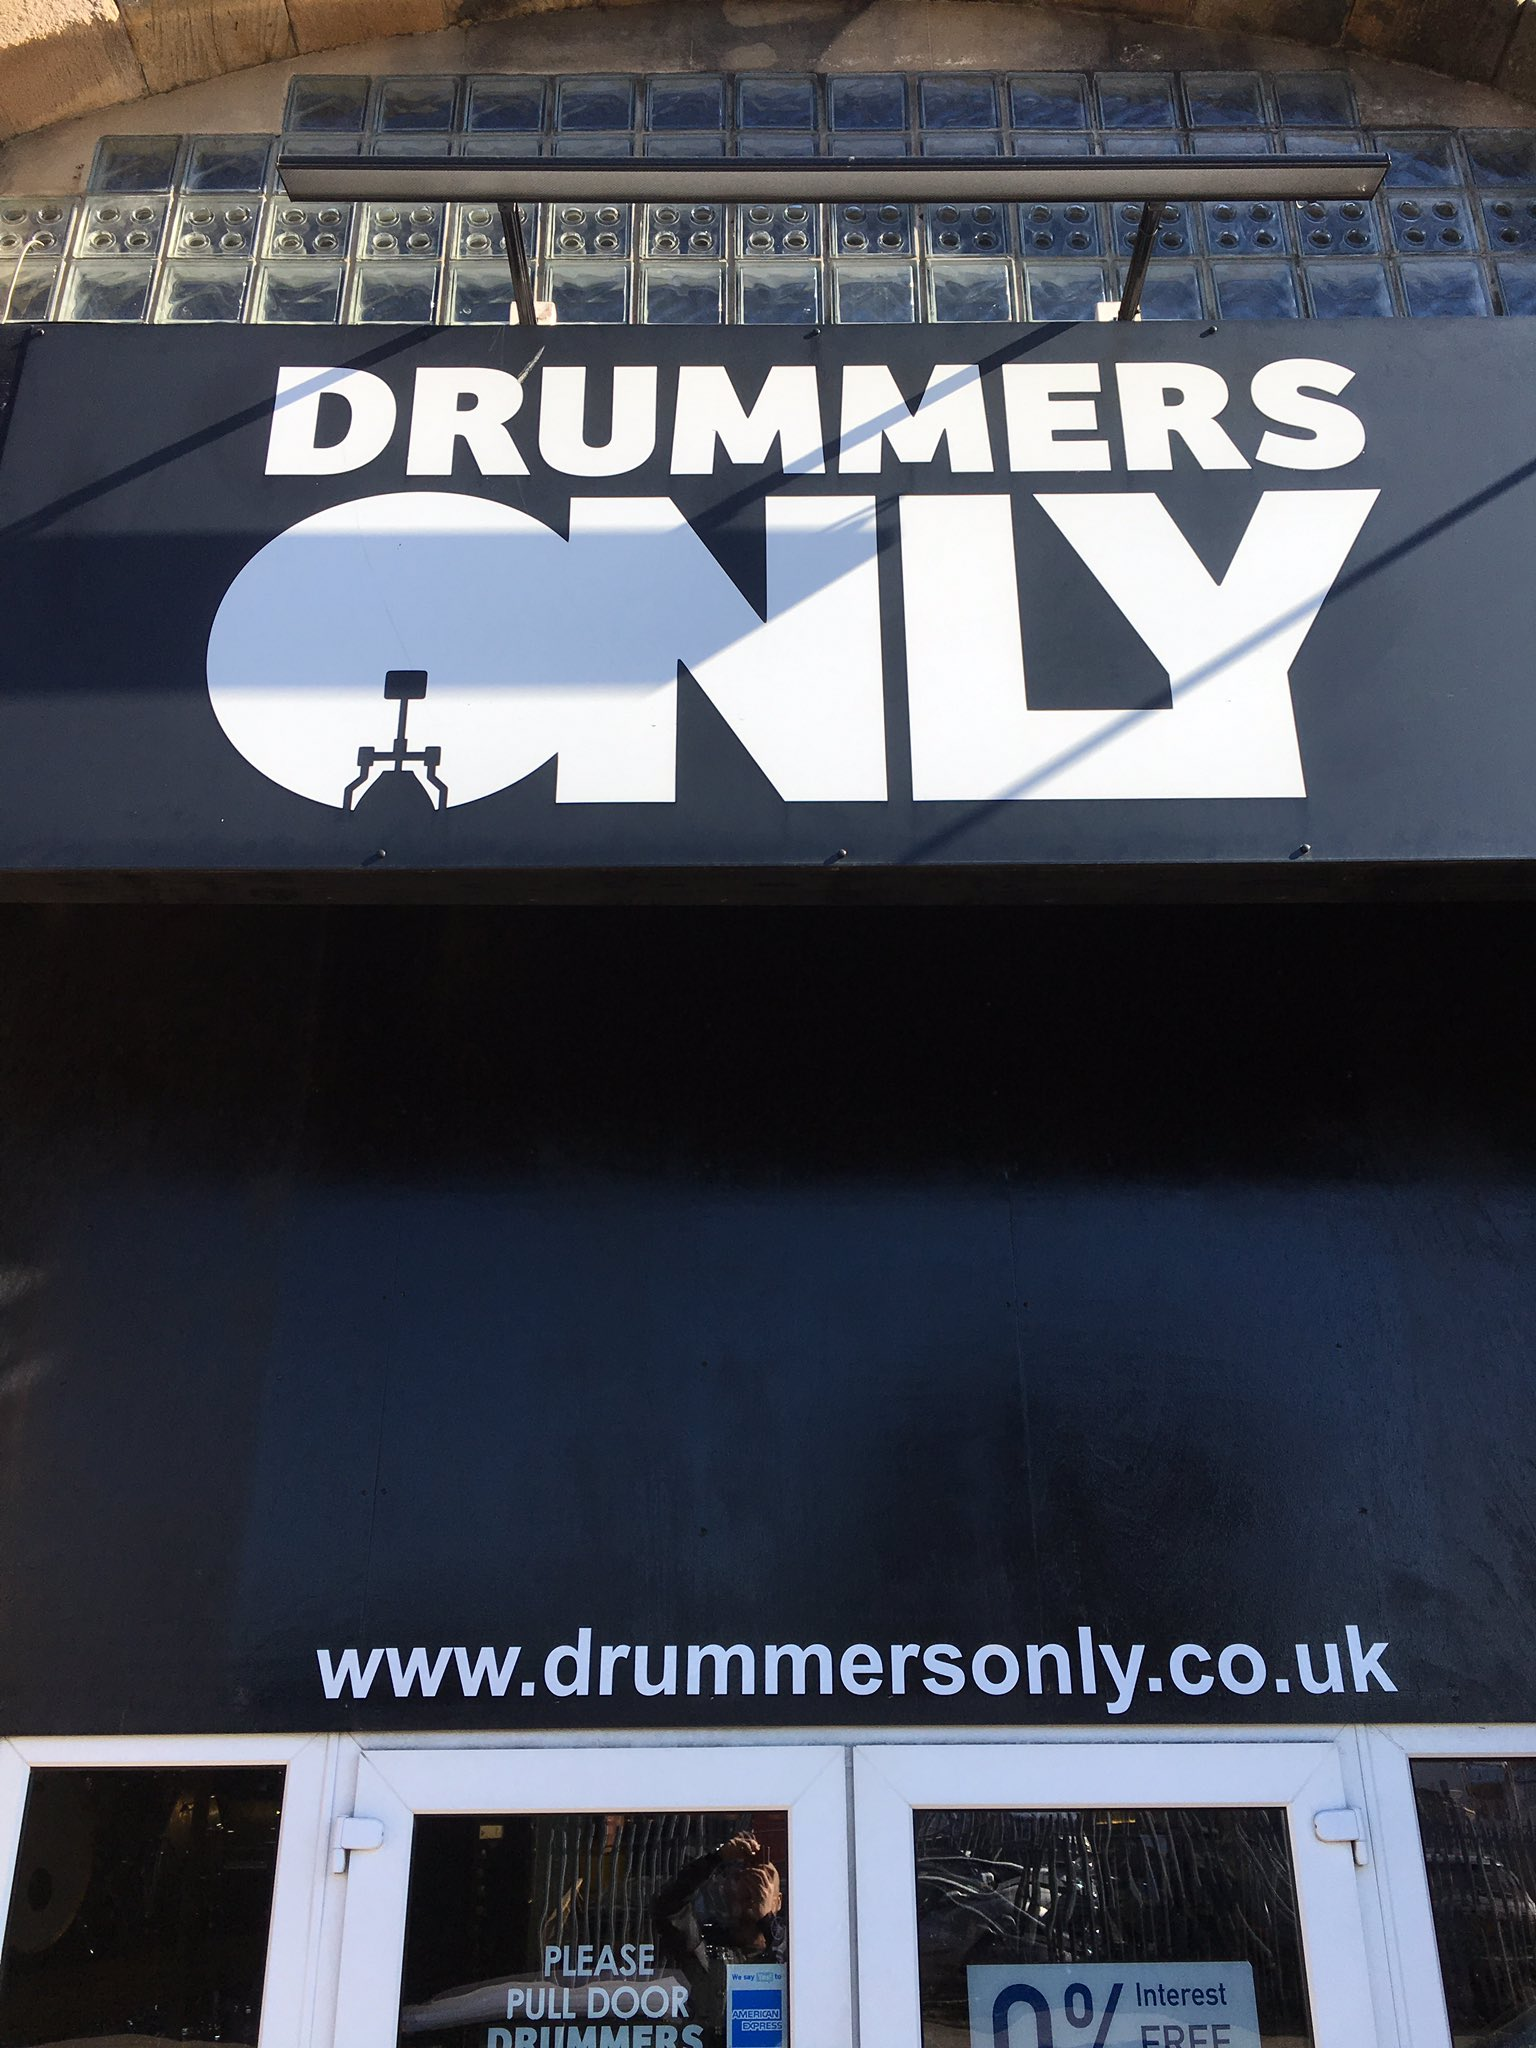 Top notch shop stocking top notch @britishdrumco products! Nice to meet you fellas @drummersonlyuk https://t.co/x7I4lRDKHr